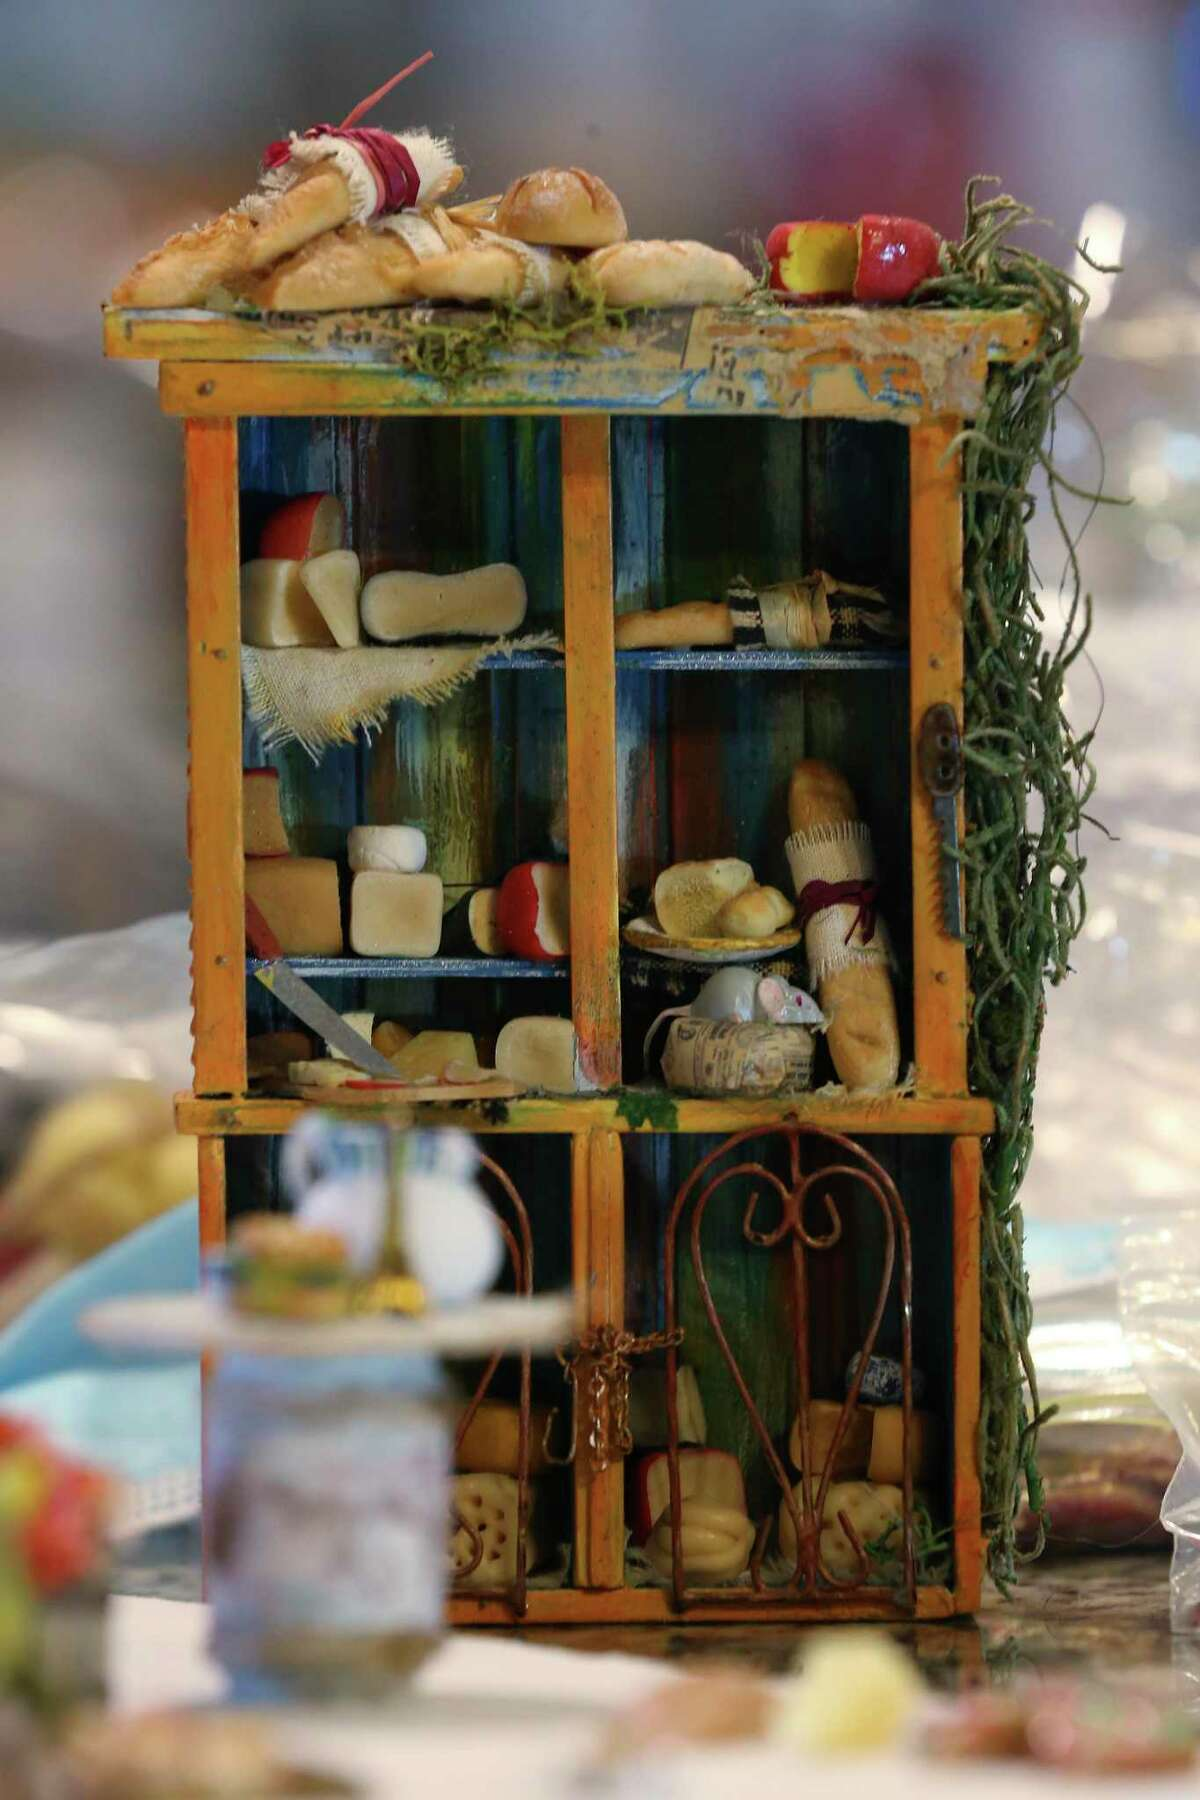 A miniature cheese pantry by artist Laura Ramirez, who lives in Mexico. Ramirez developed her miniature making skills at the former My Doll House shop in Alamo Heights.